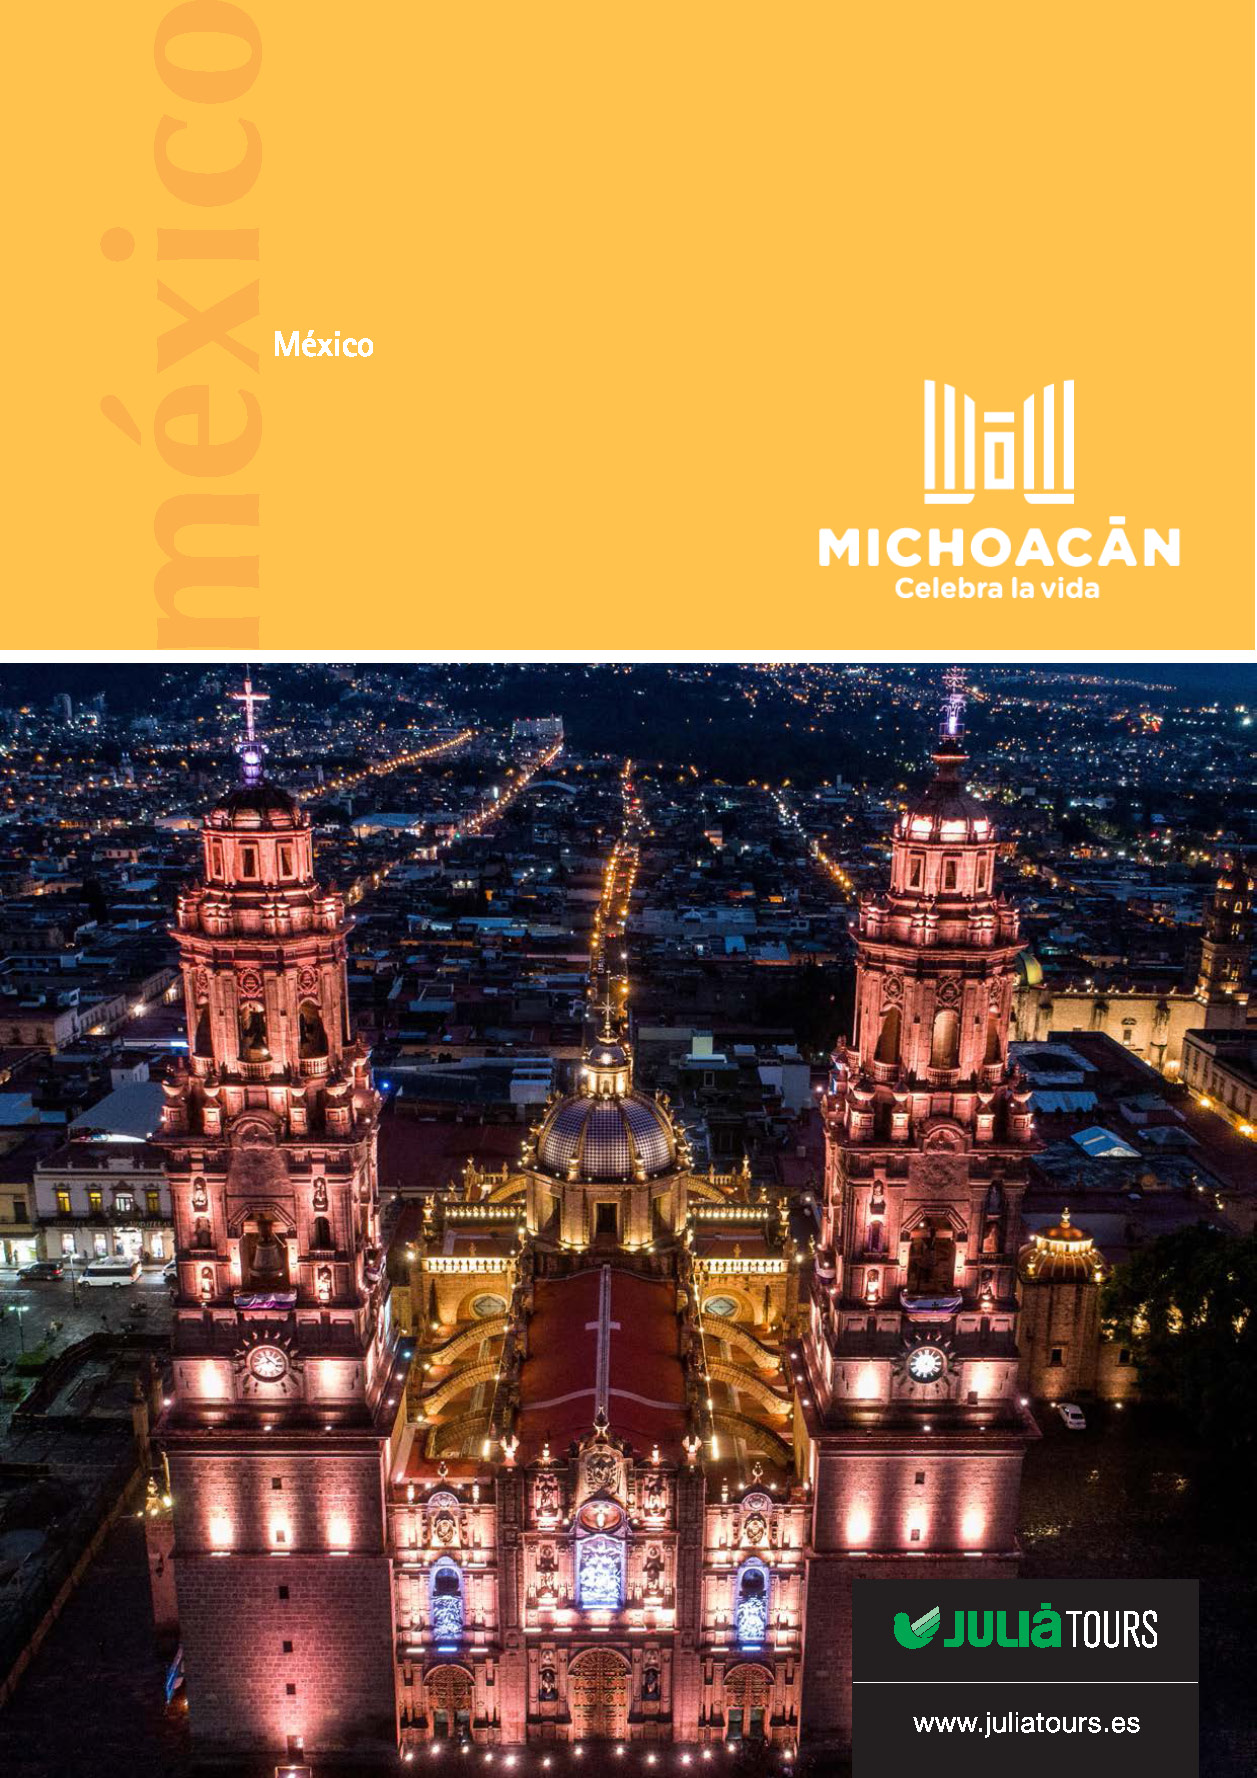 Catalogo Julia Tours ESPECIAL MICHOACAN 2019-2020